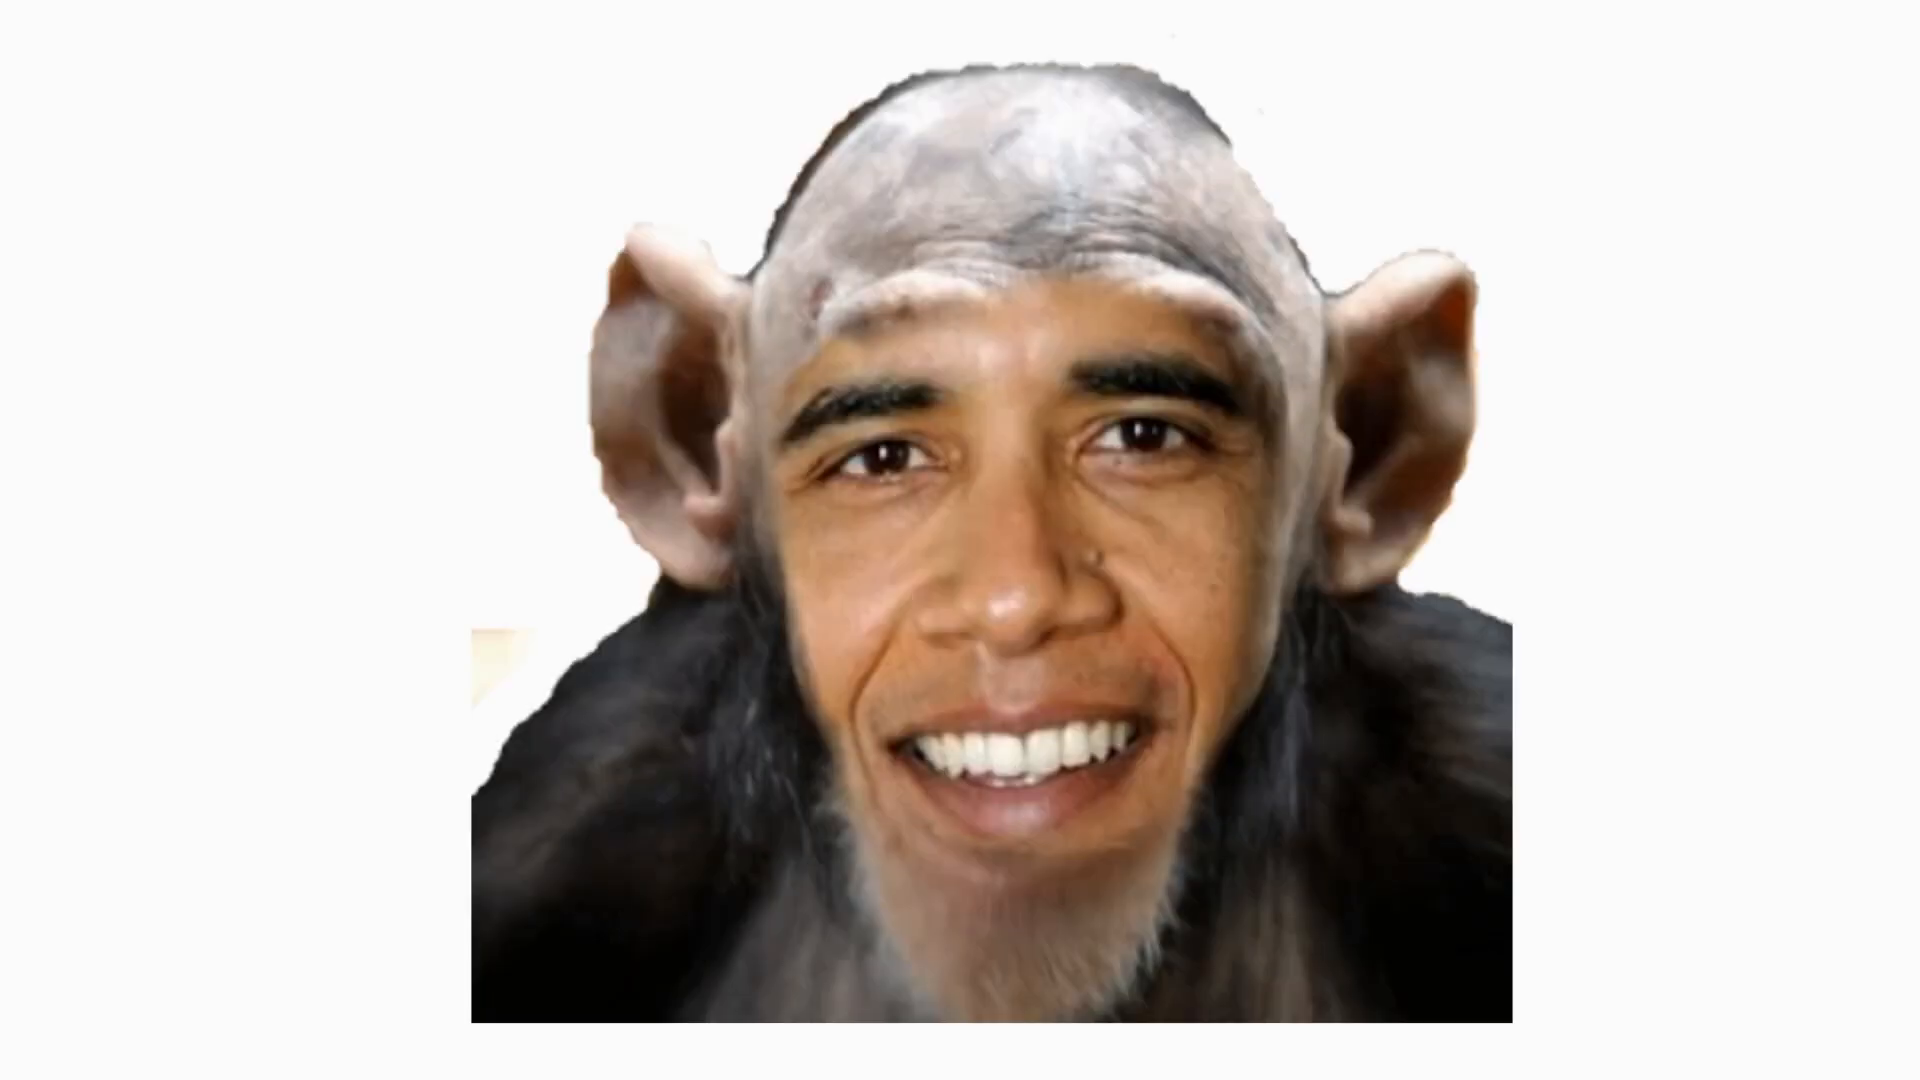 White Lightning - Obama is a Monkey HE Aint my President.